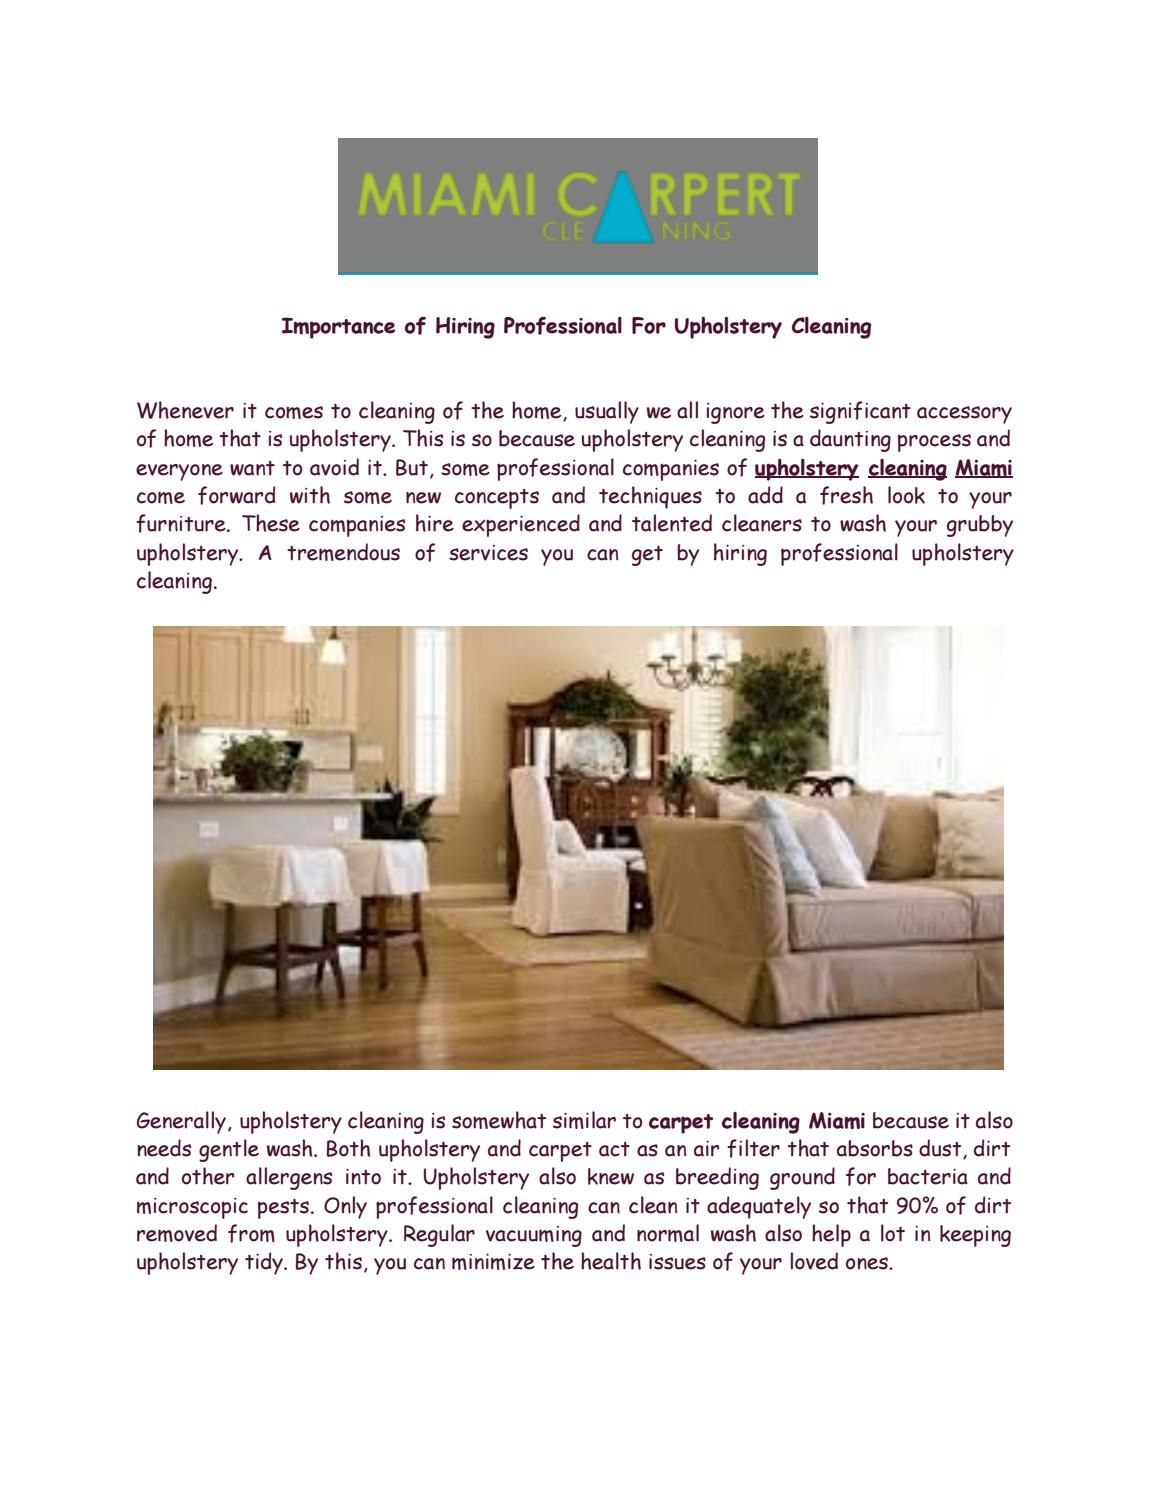 Importance of Hiring Professional For Upholstery Cleaning